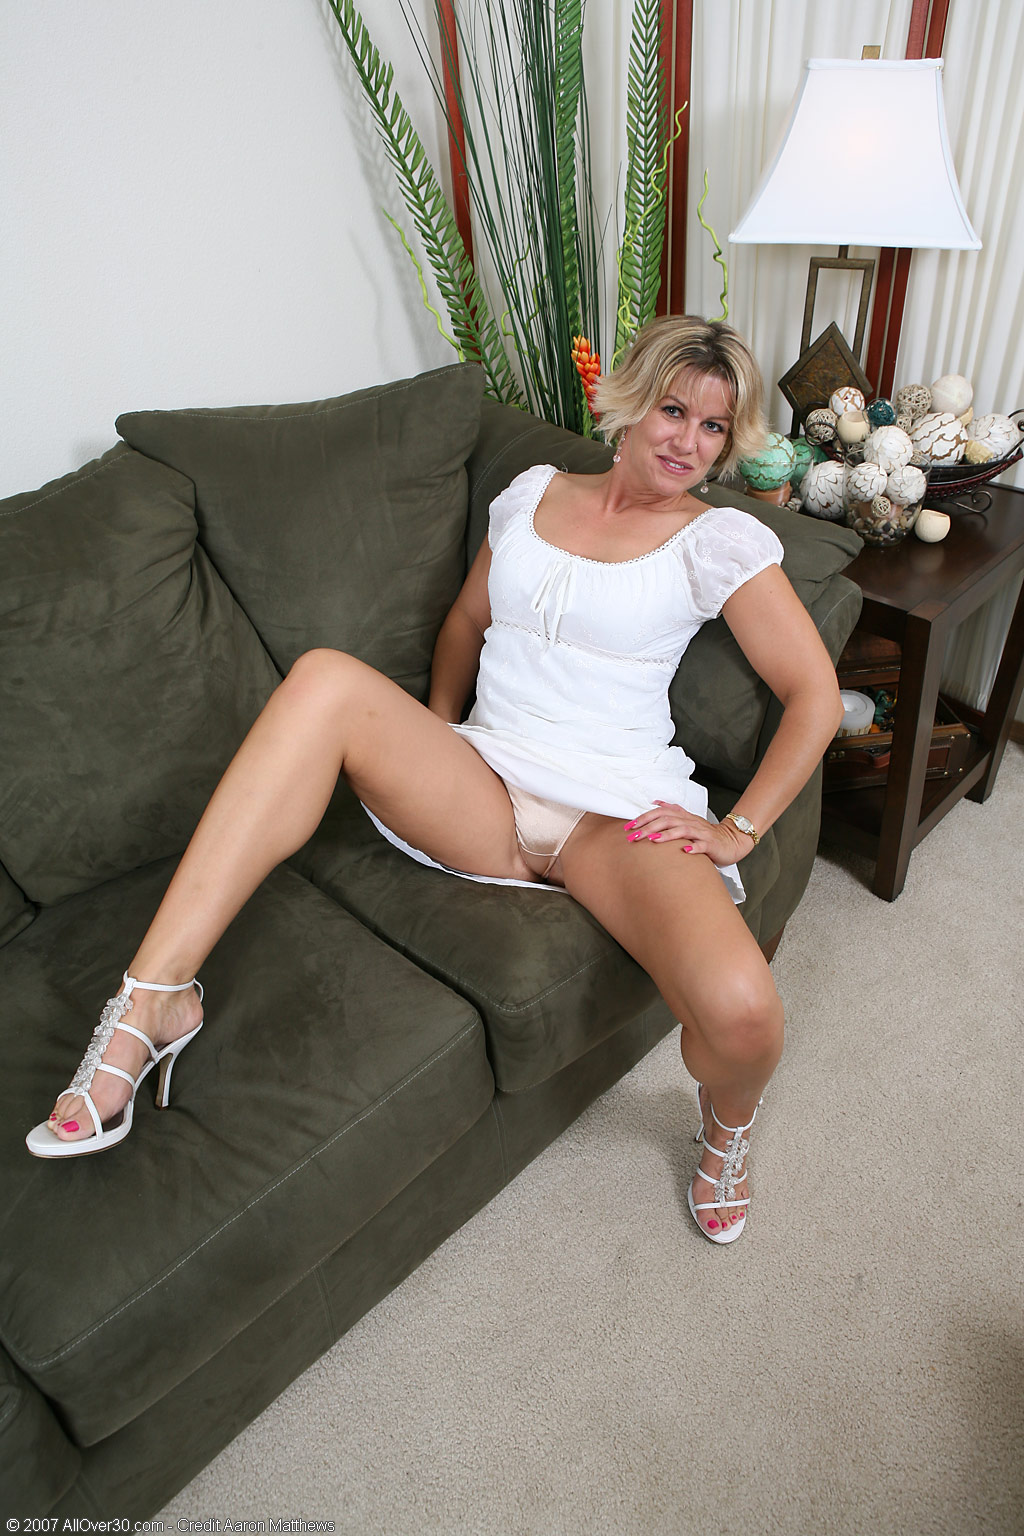 allover30 - hot milf anne hello all out there :) hope you all are